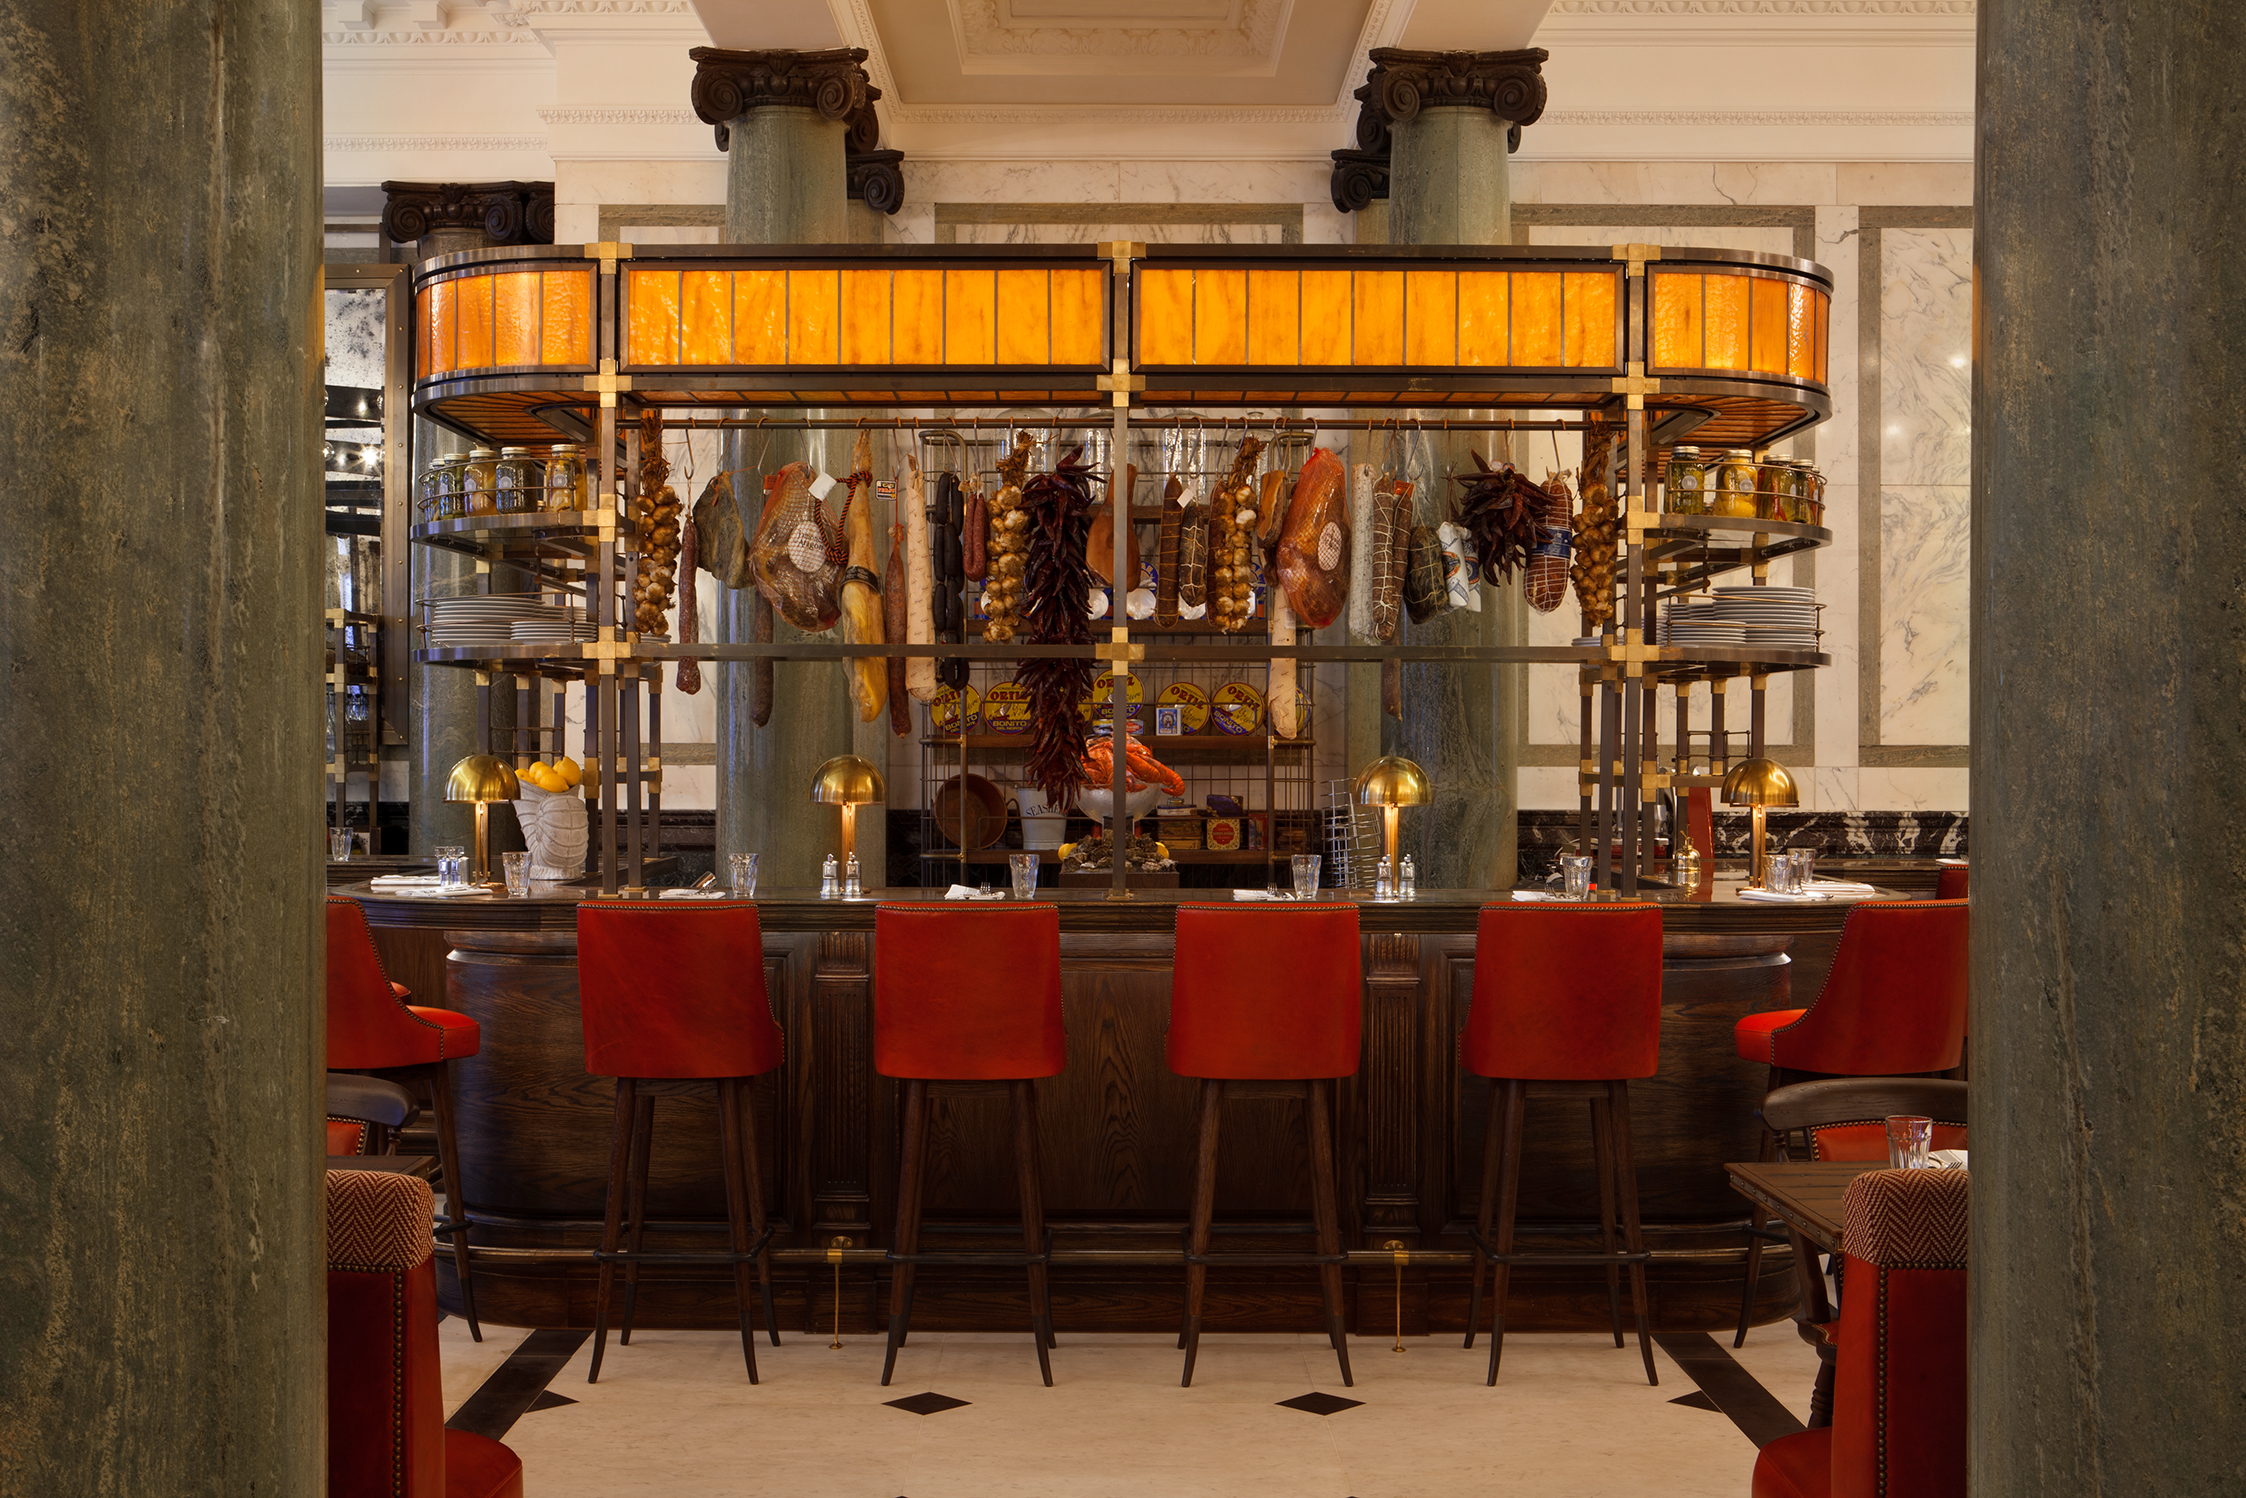 Holborn Dining Room review: adds class to commuterville